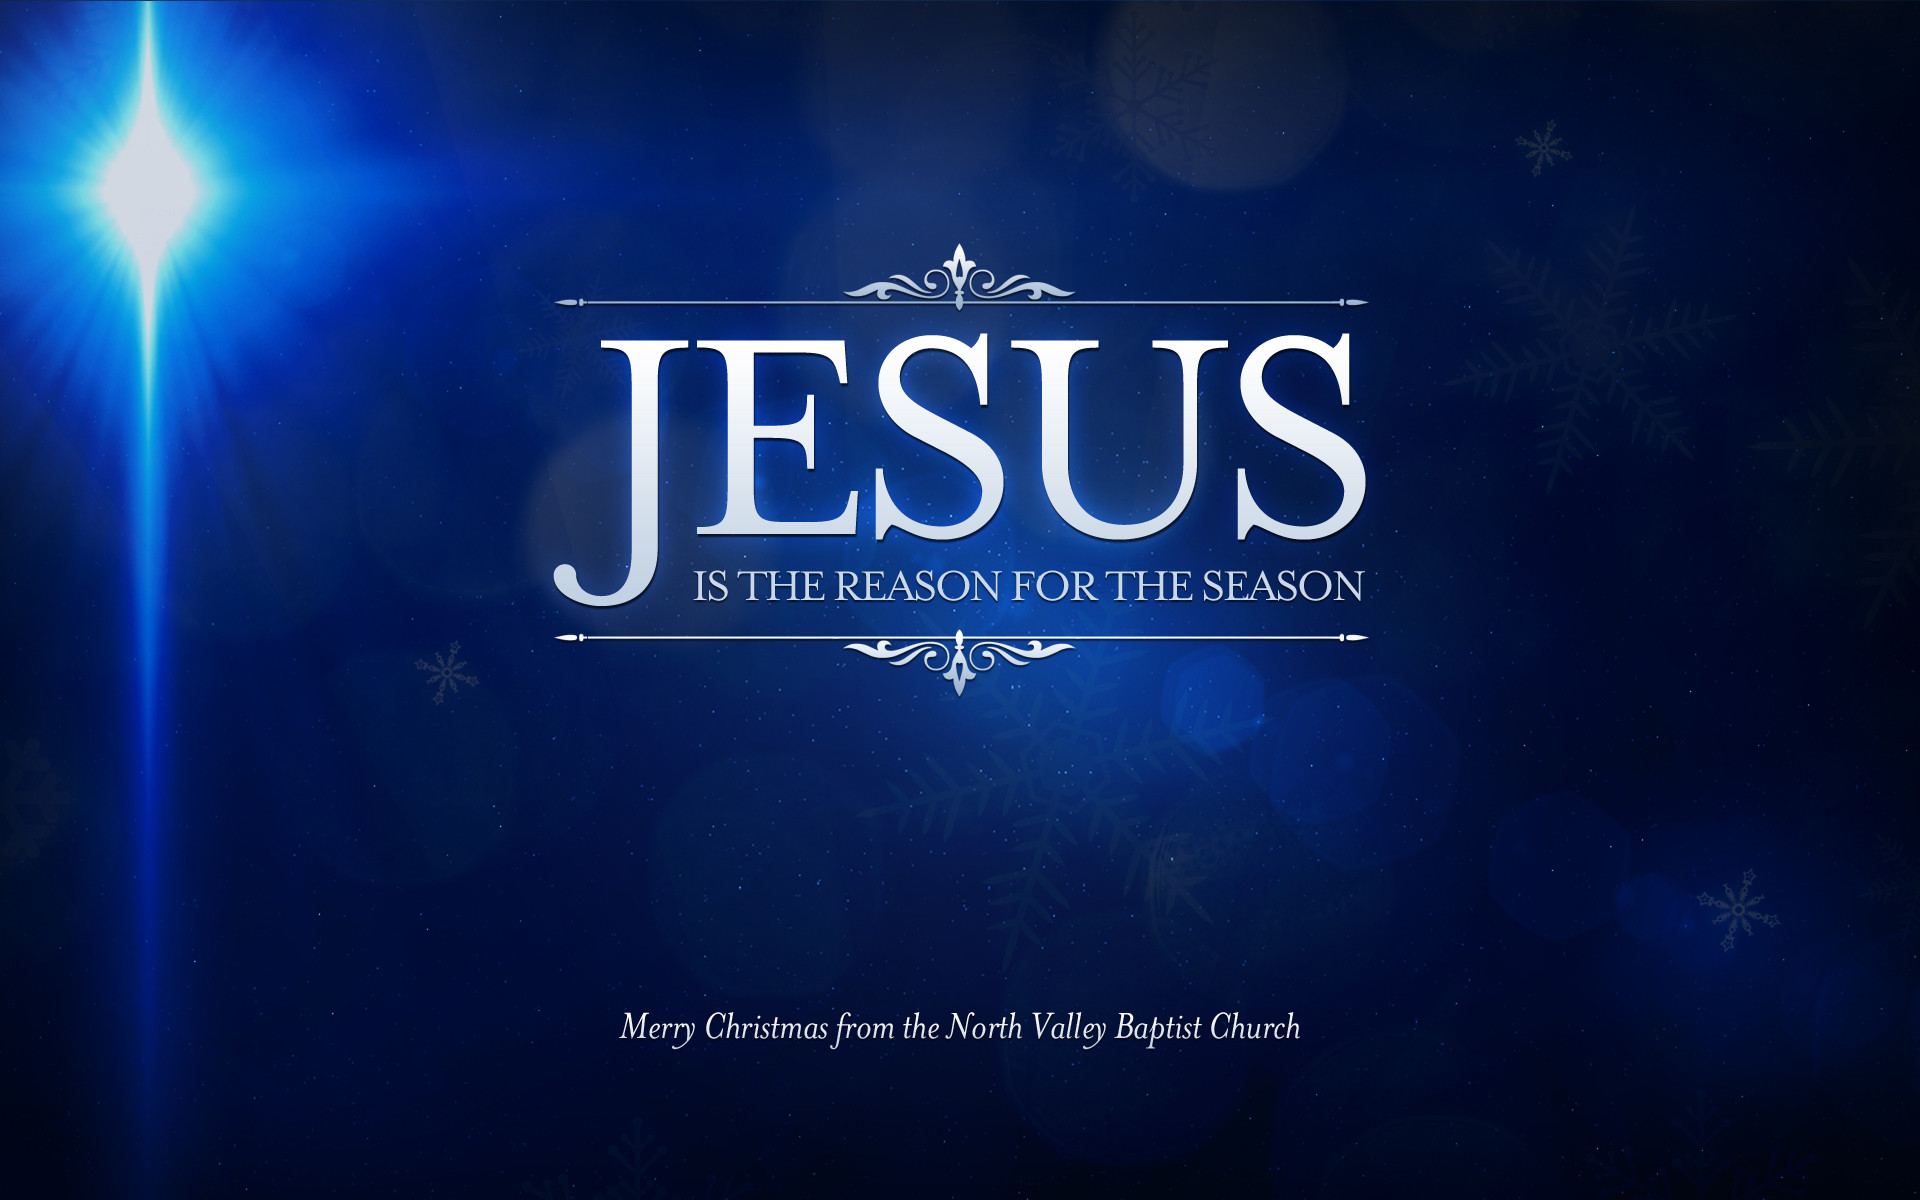 1920x1200 nvbc.org/images/pages/wallpapers/jesus-wide.jpg